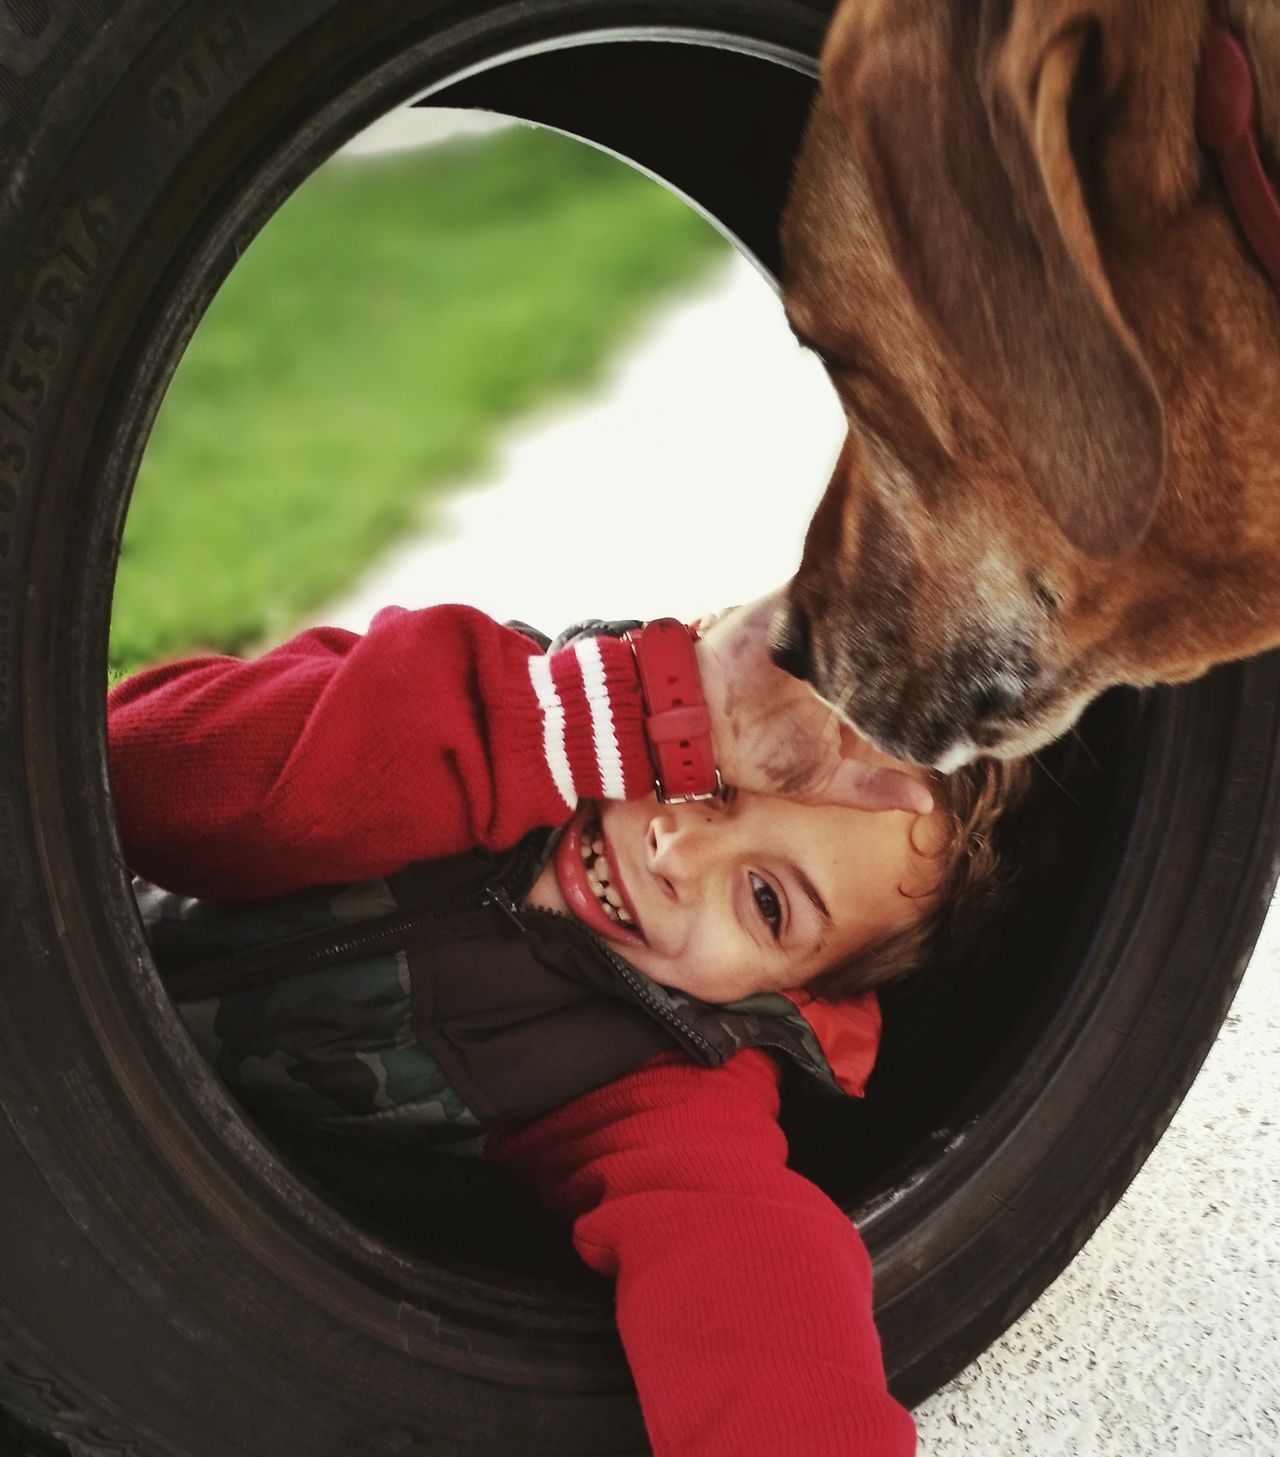 RawWorld Childhood Smiling A Dogs Life Tire Inside Things Pet Life  Outdoor Photography